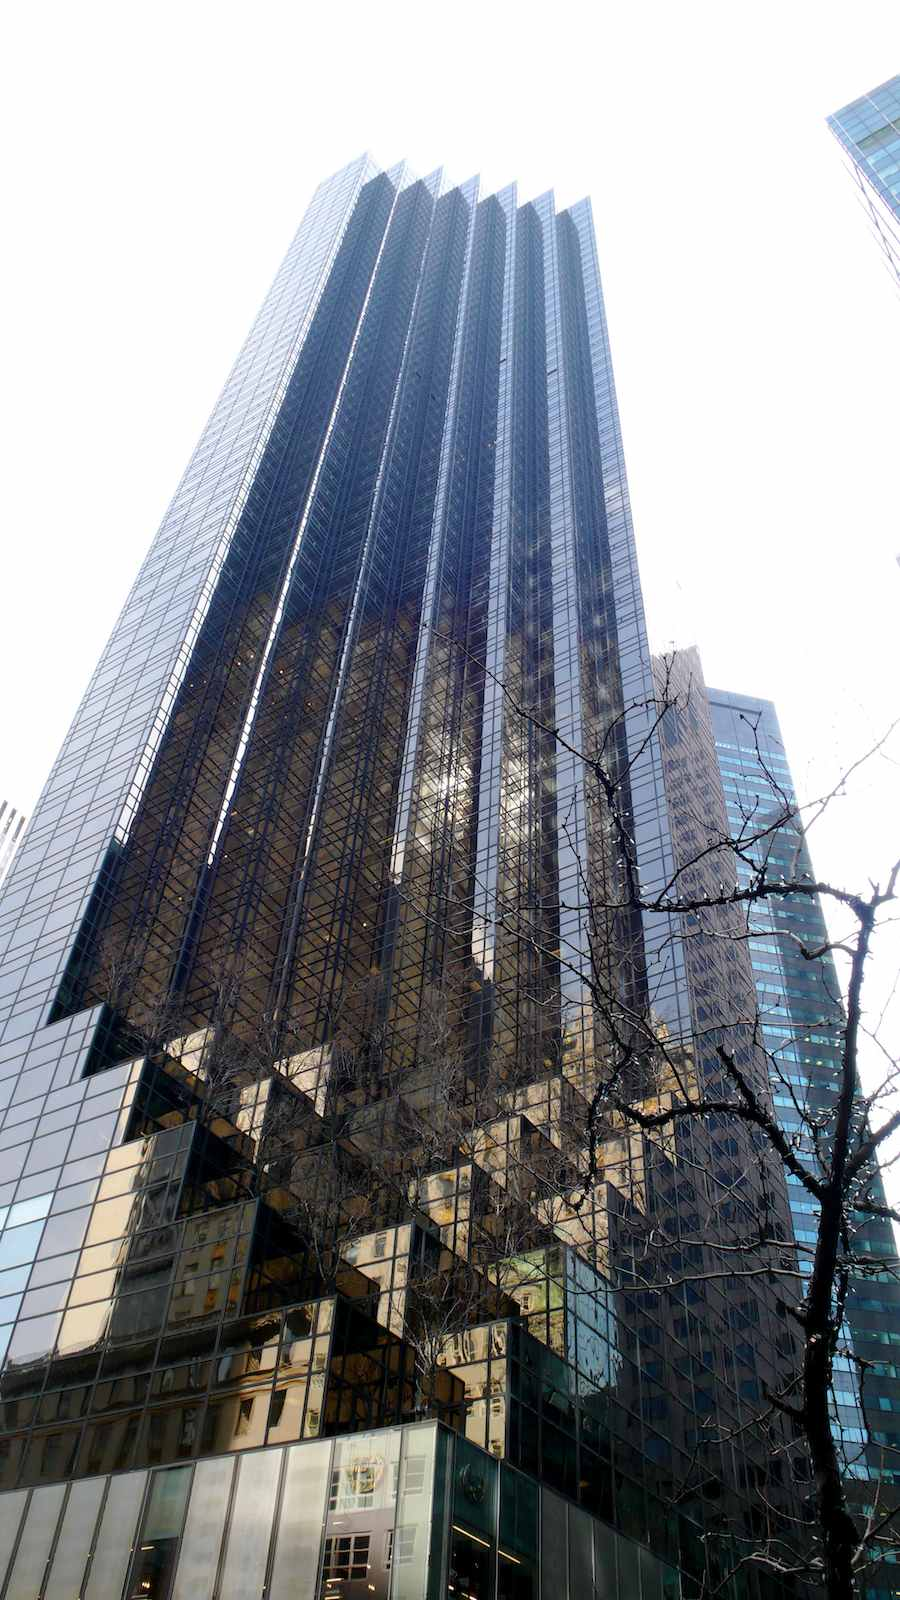 Trump Tower 5th avenue NYC - Photo by Andrea Puggioni Flickr CC